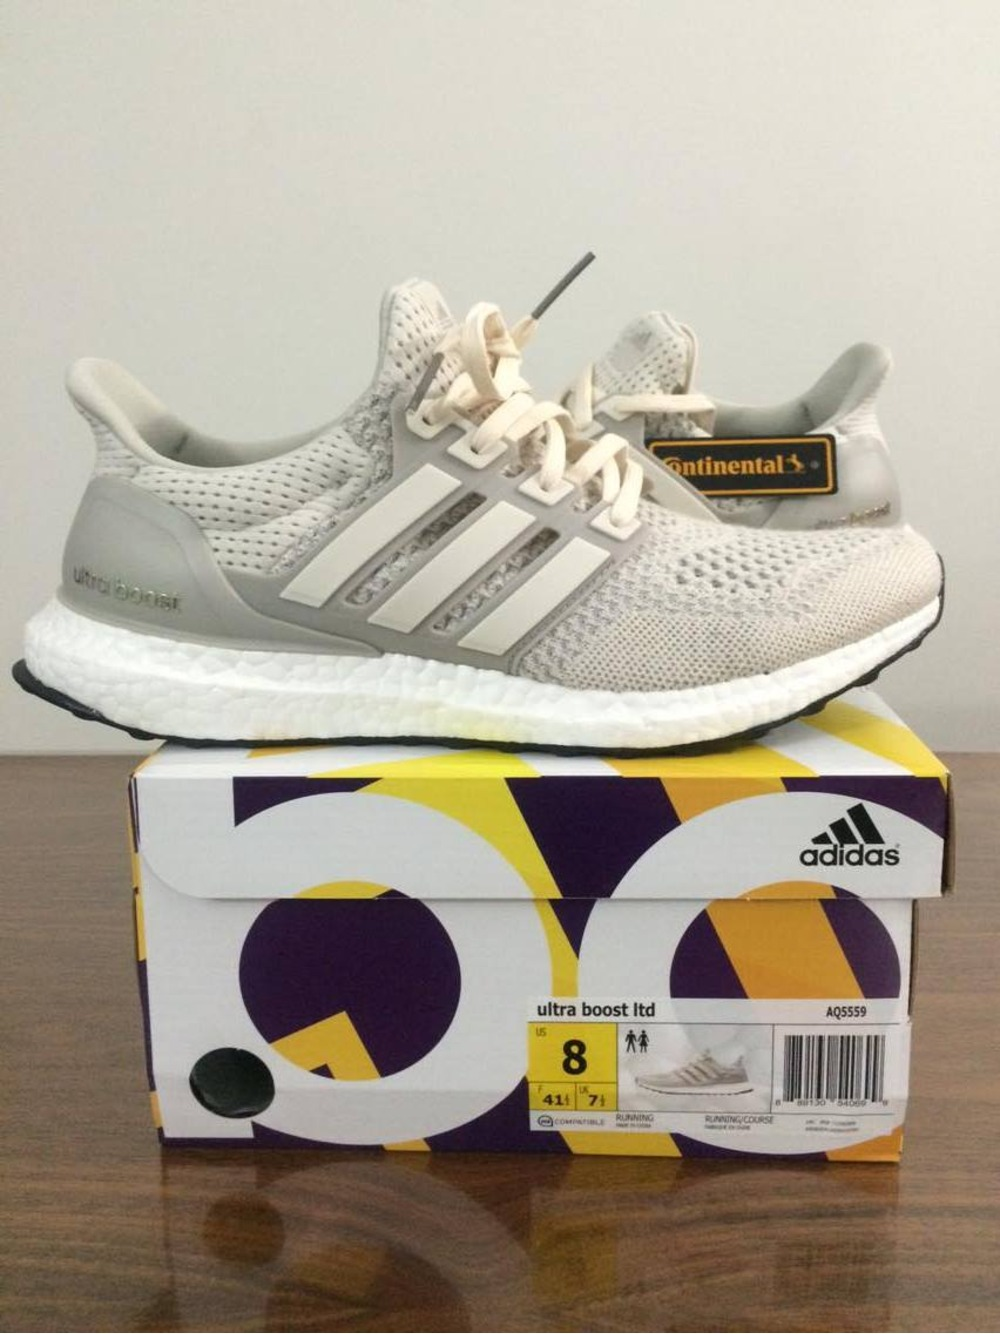 5a5478cbfec Adidas Ultra Boost Cream Chalk Adidasoutlettrainers.co.uk